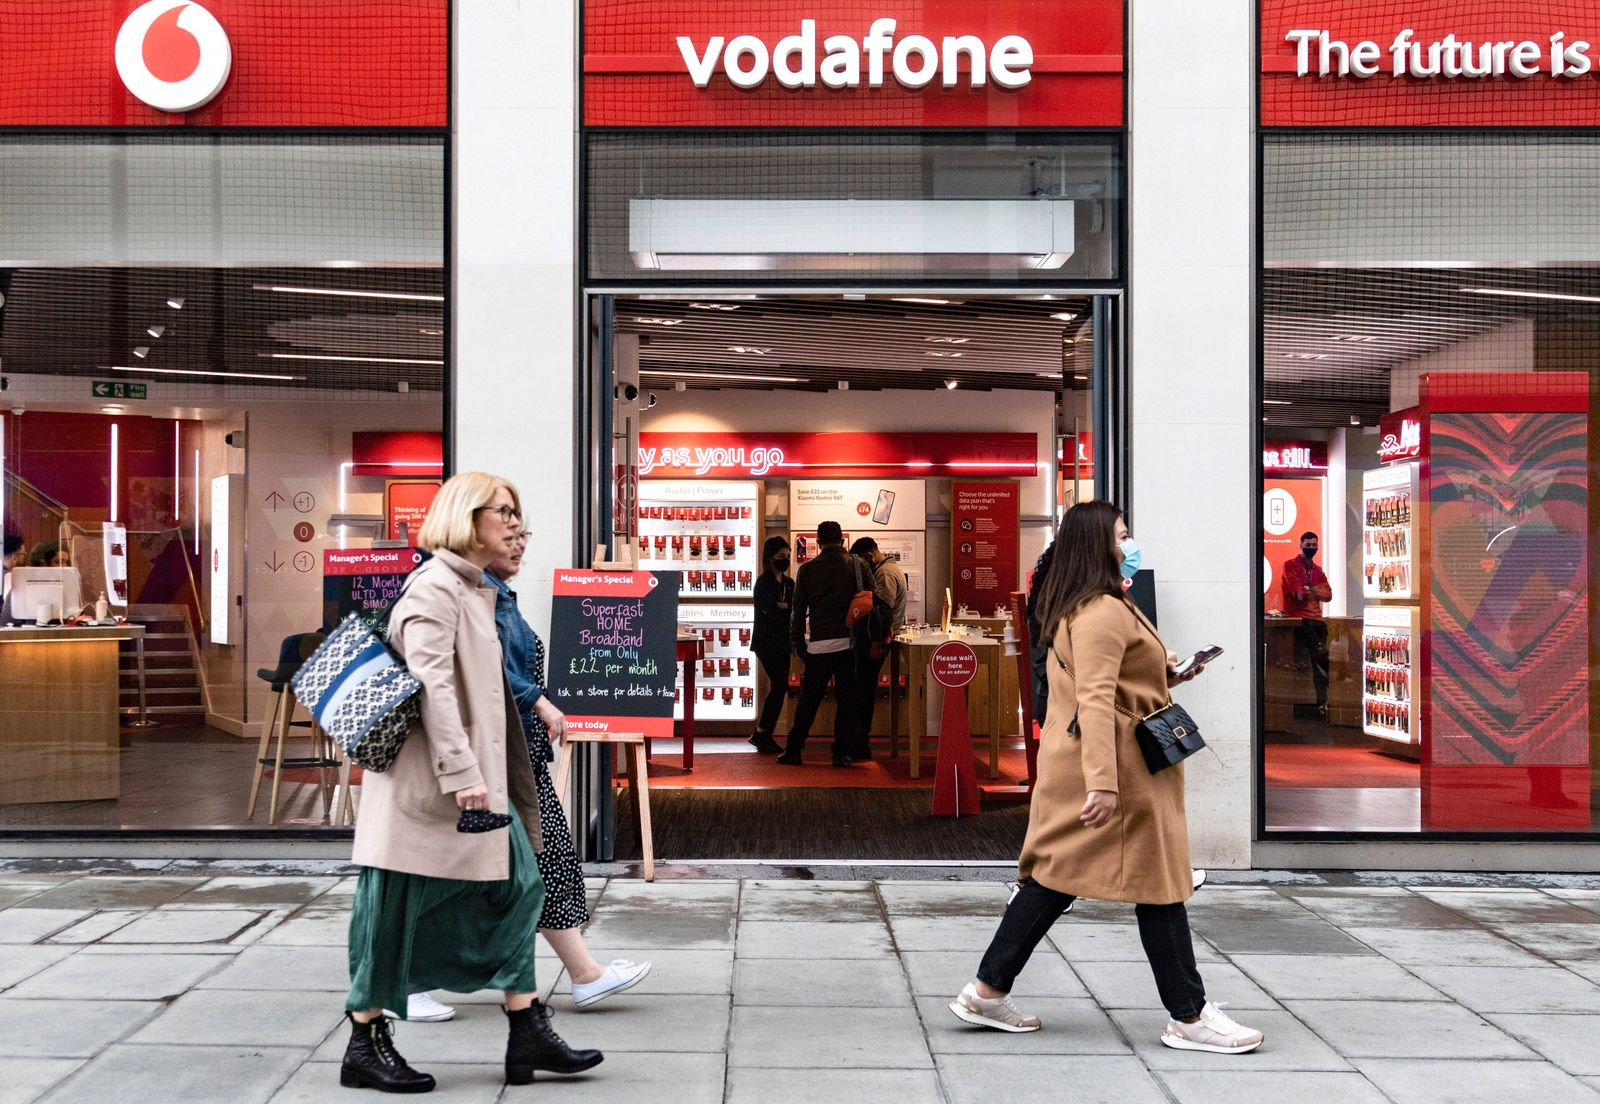 May 17, 2021, London, United Kingdom: People passing Vodafone telecom shop. The Prime Minister announced that England c